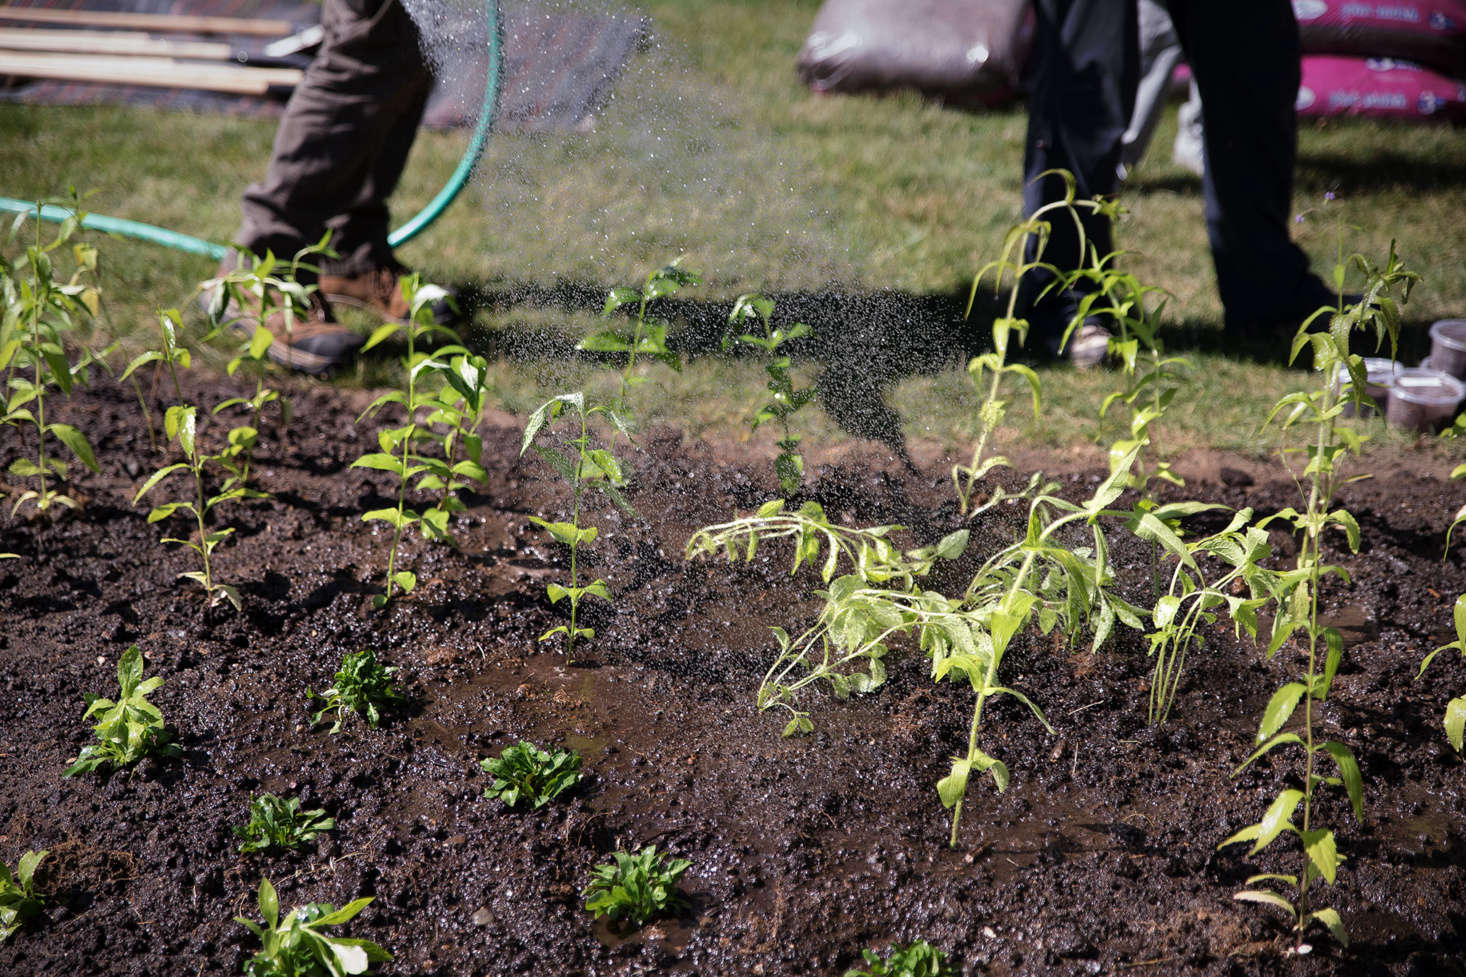 The team from New England Wild Flower Society recommends that you keep your plants moist on planting day. A layer of mulch after you water will help maintain moisture.